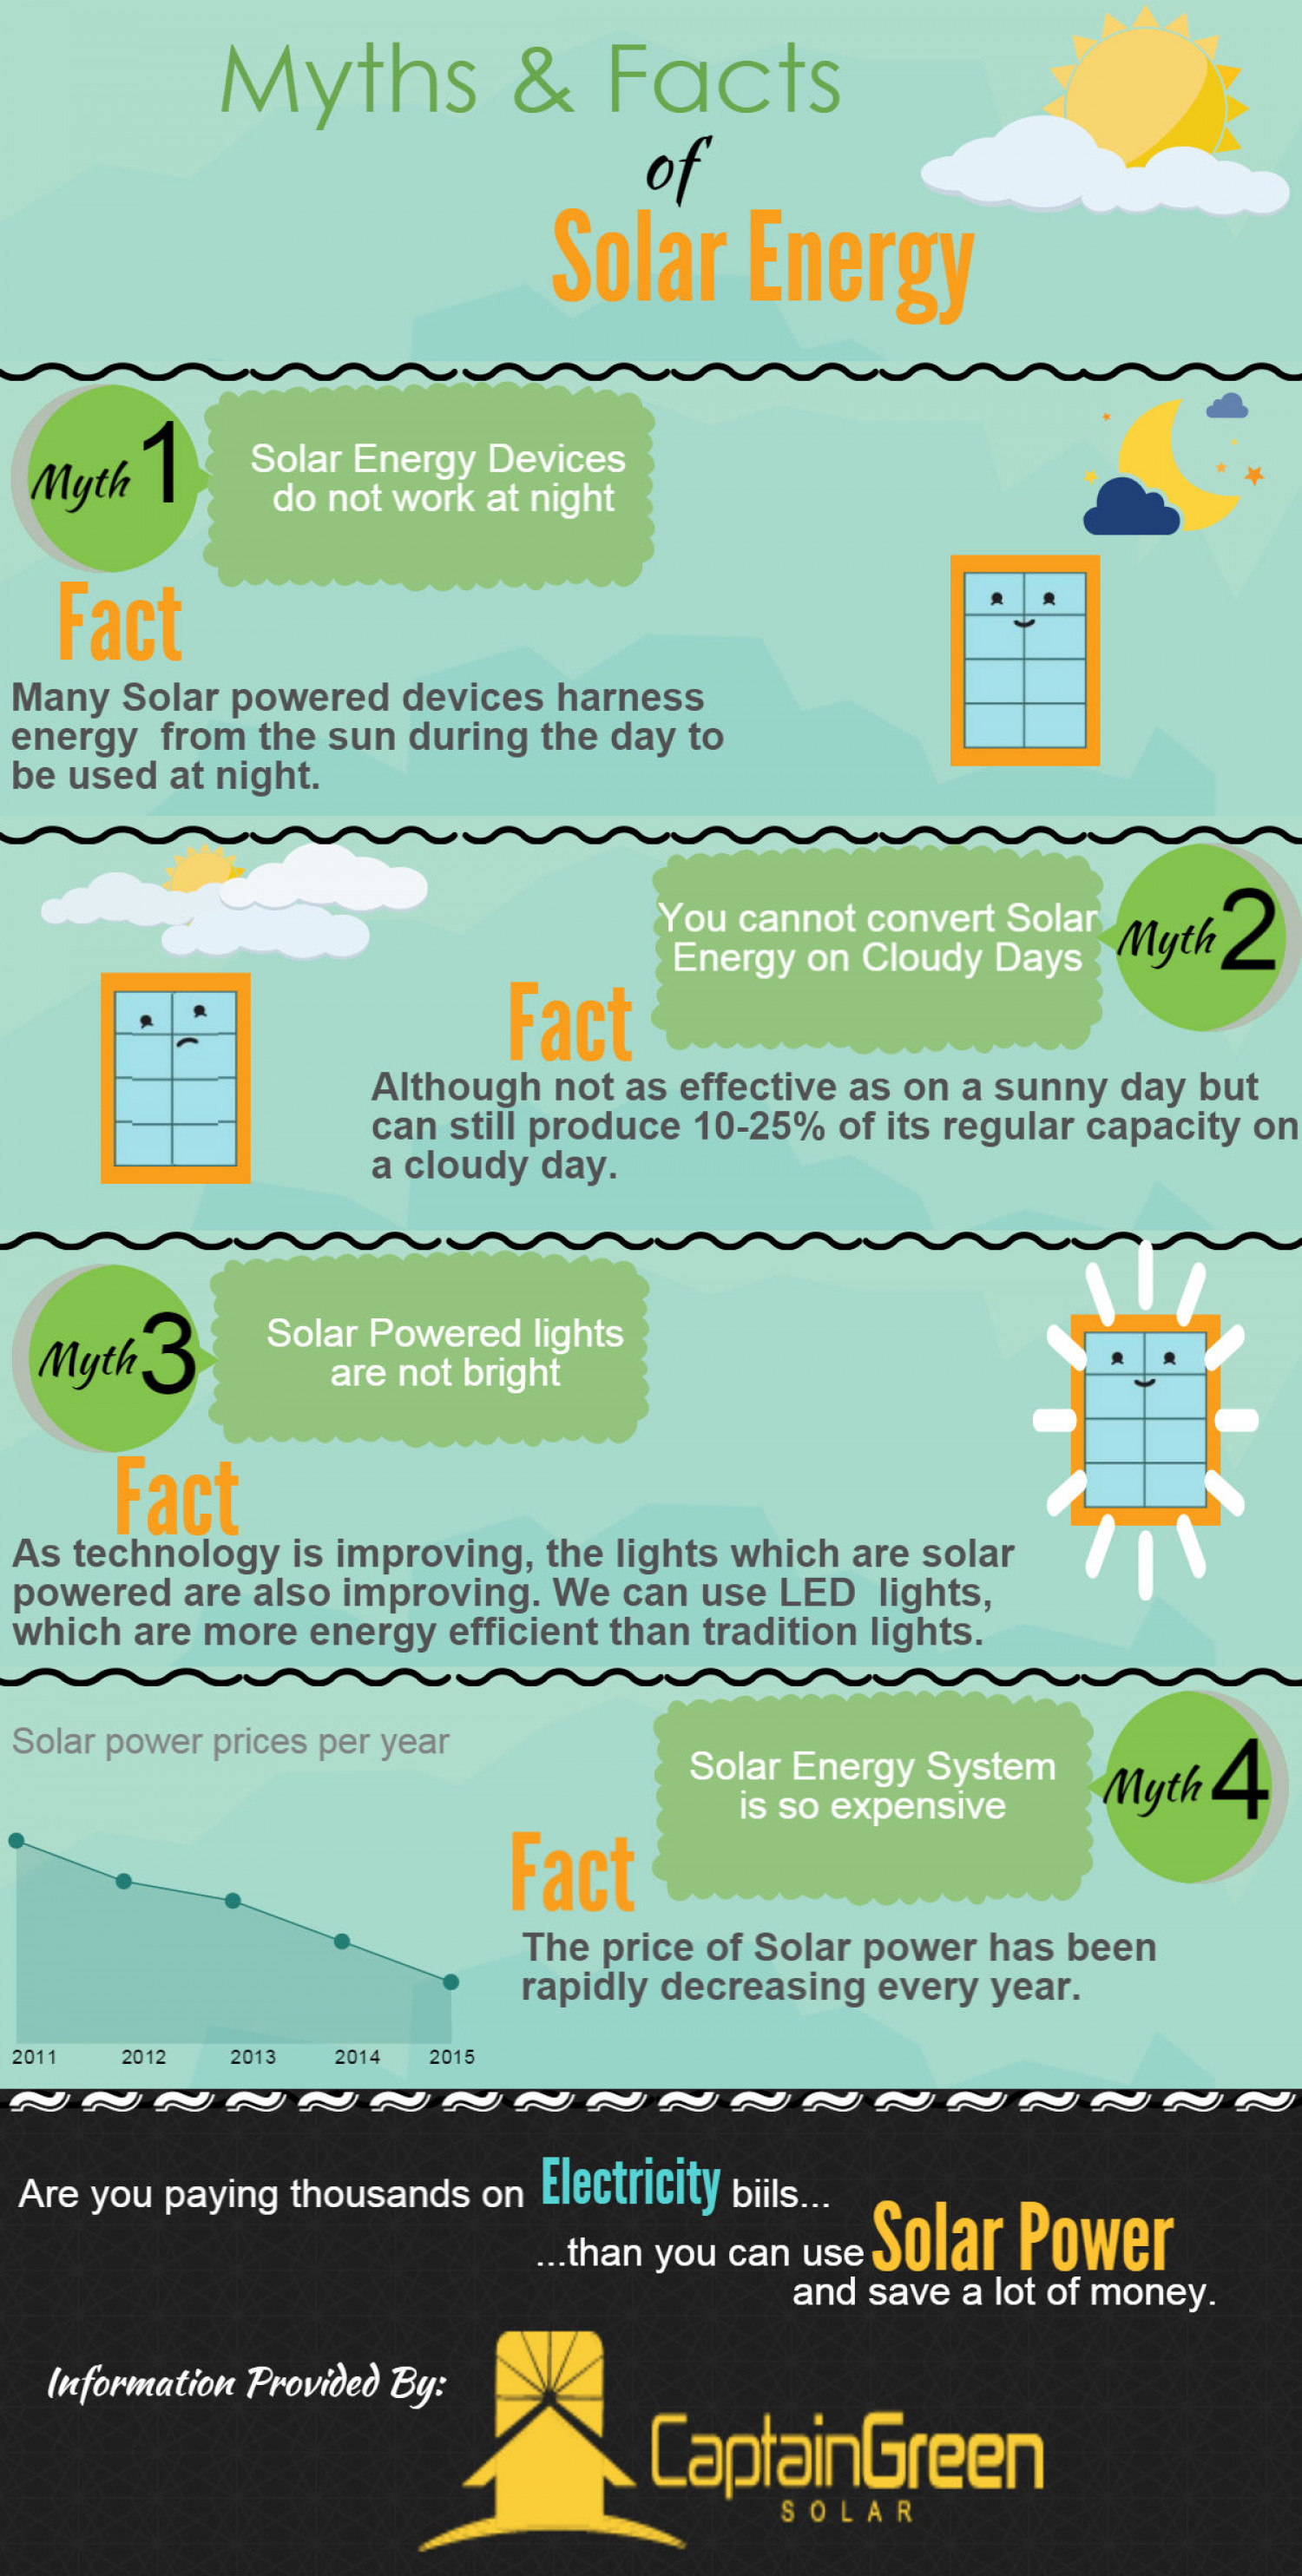 Myths and facts Regarding Solar Energy Infographic